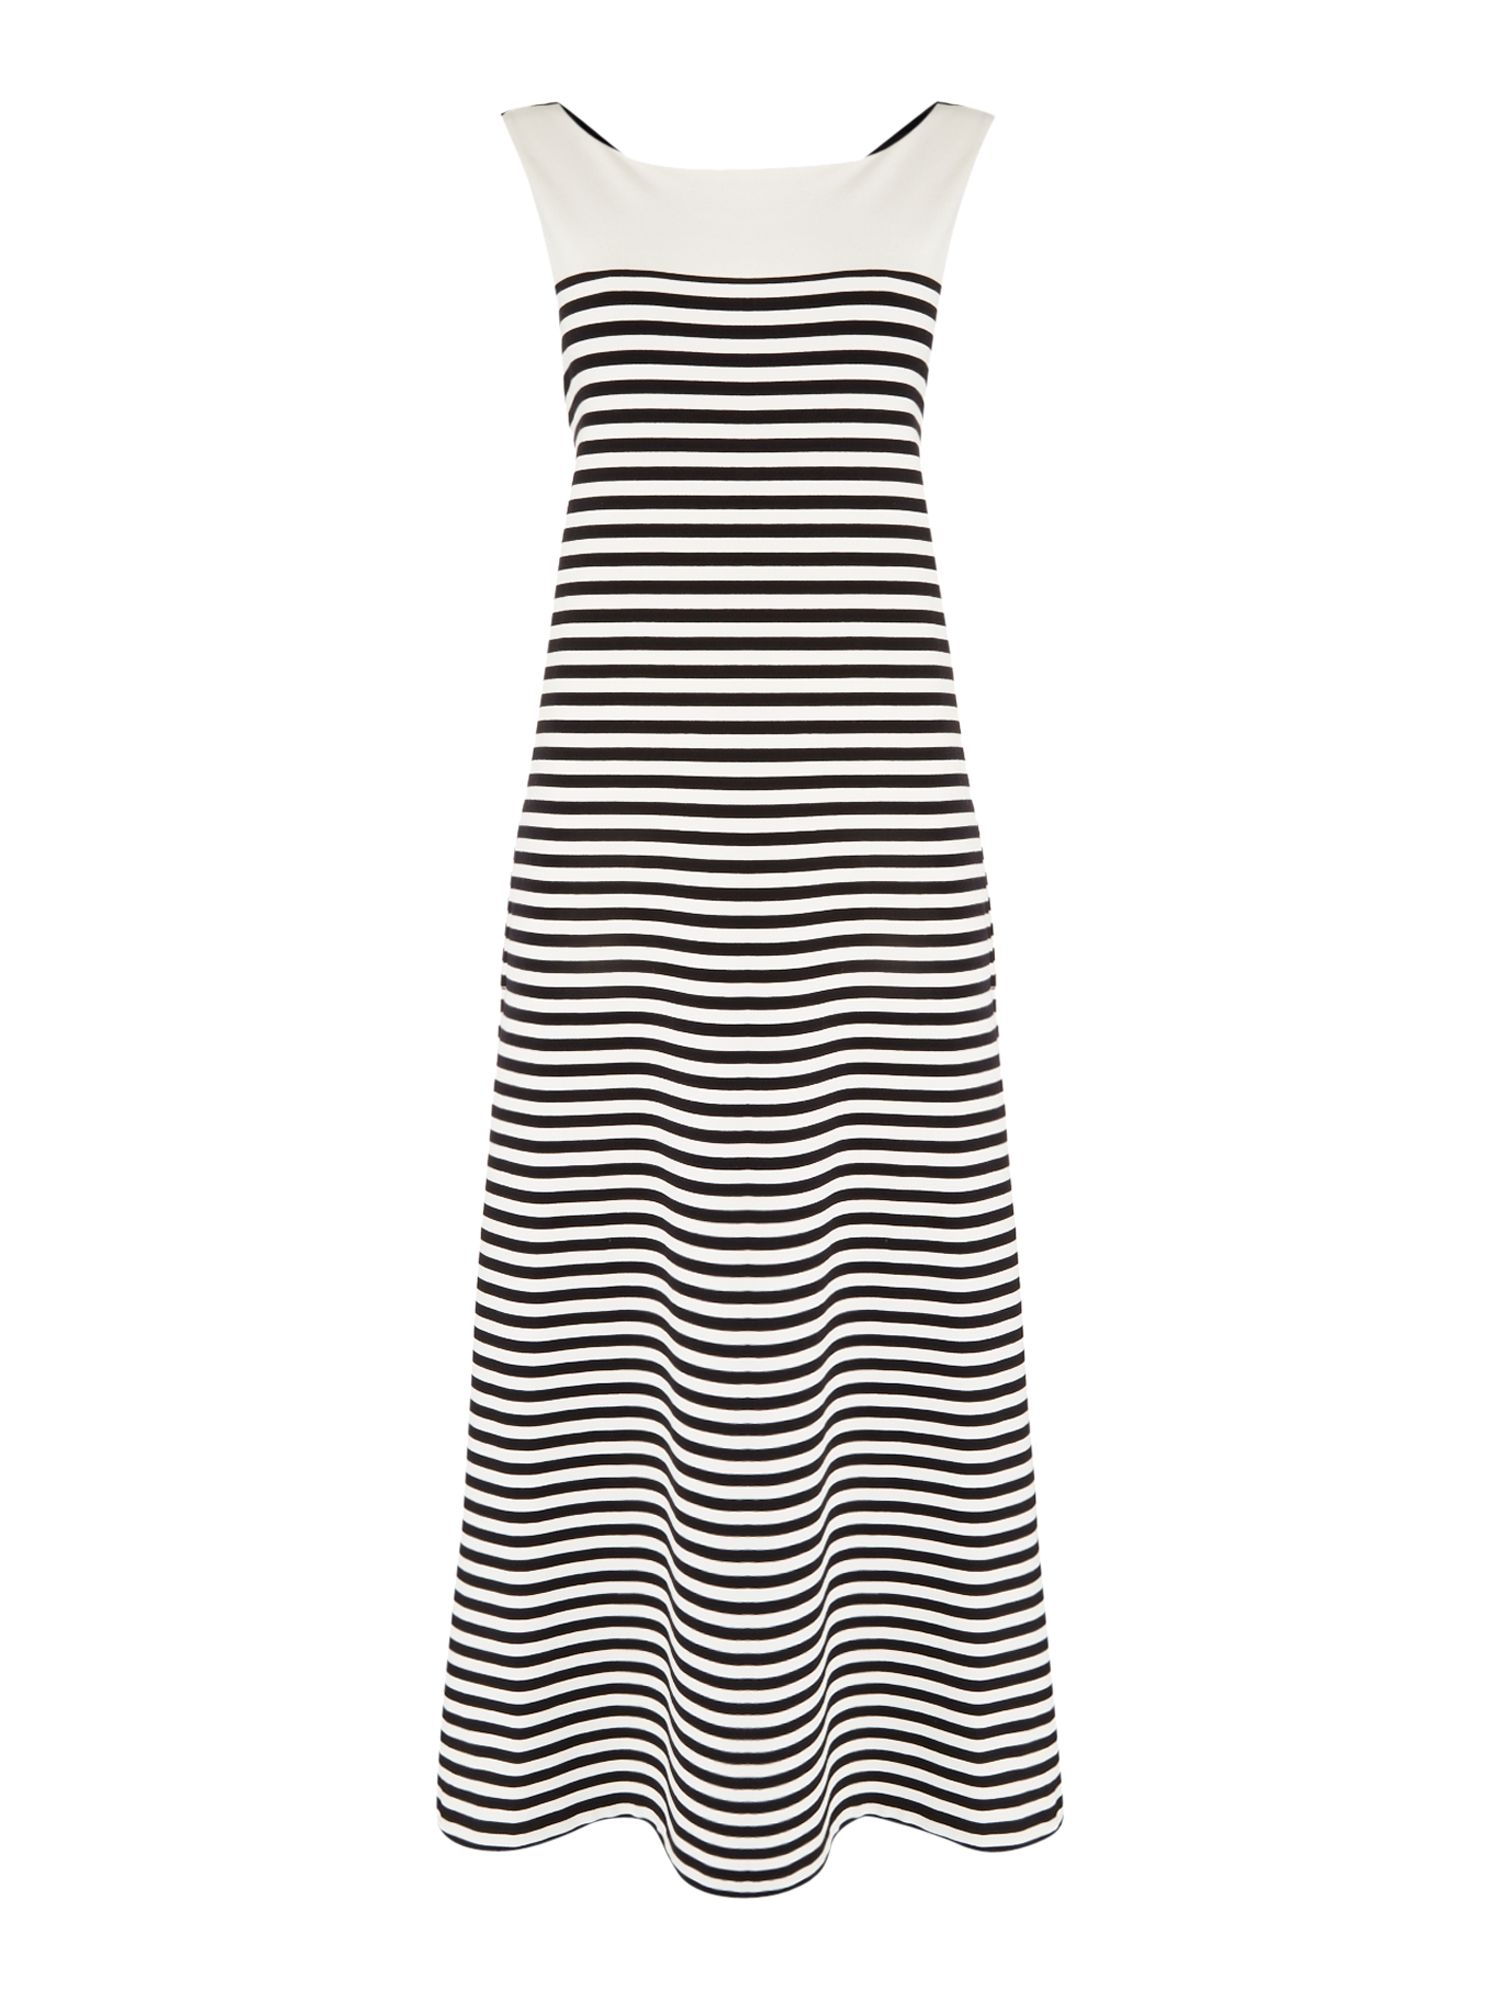 Max Mara Weekend CITRATO striped body contrast top maxi dress, Black